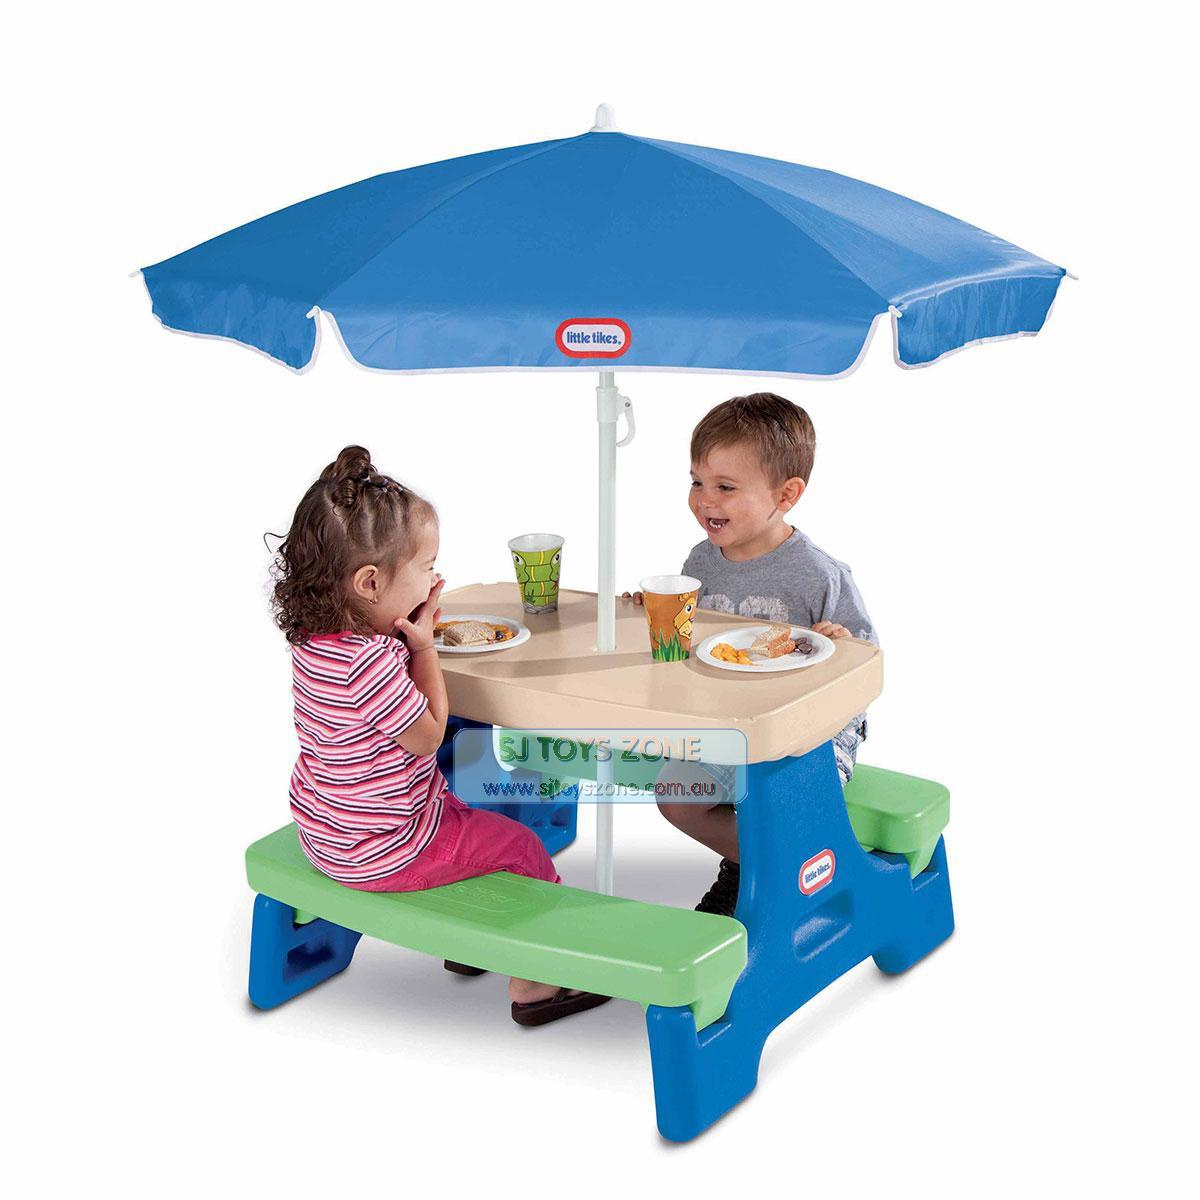 EASY STORE JR PLAY TABLE